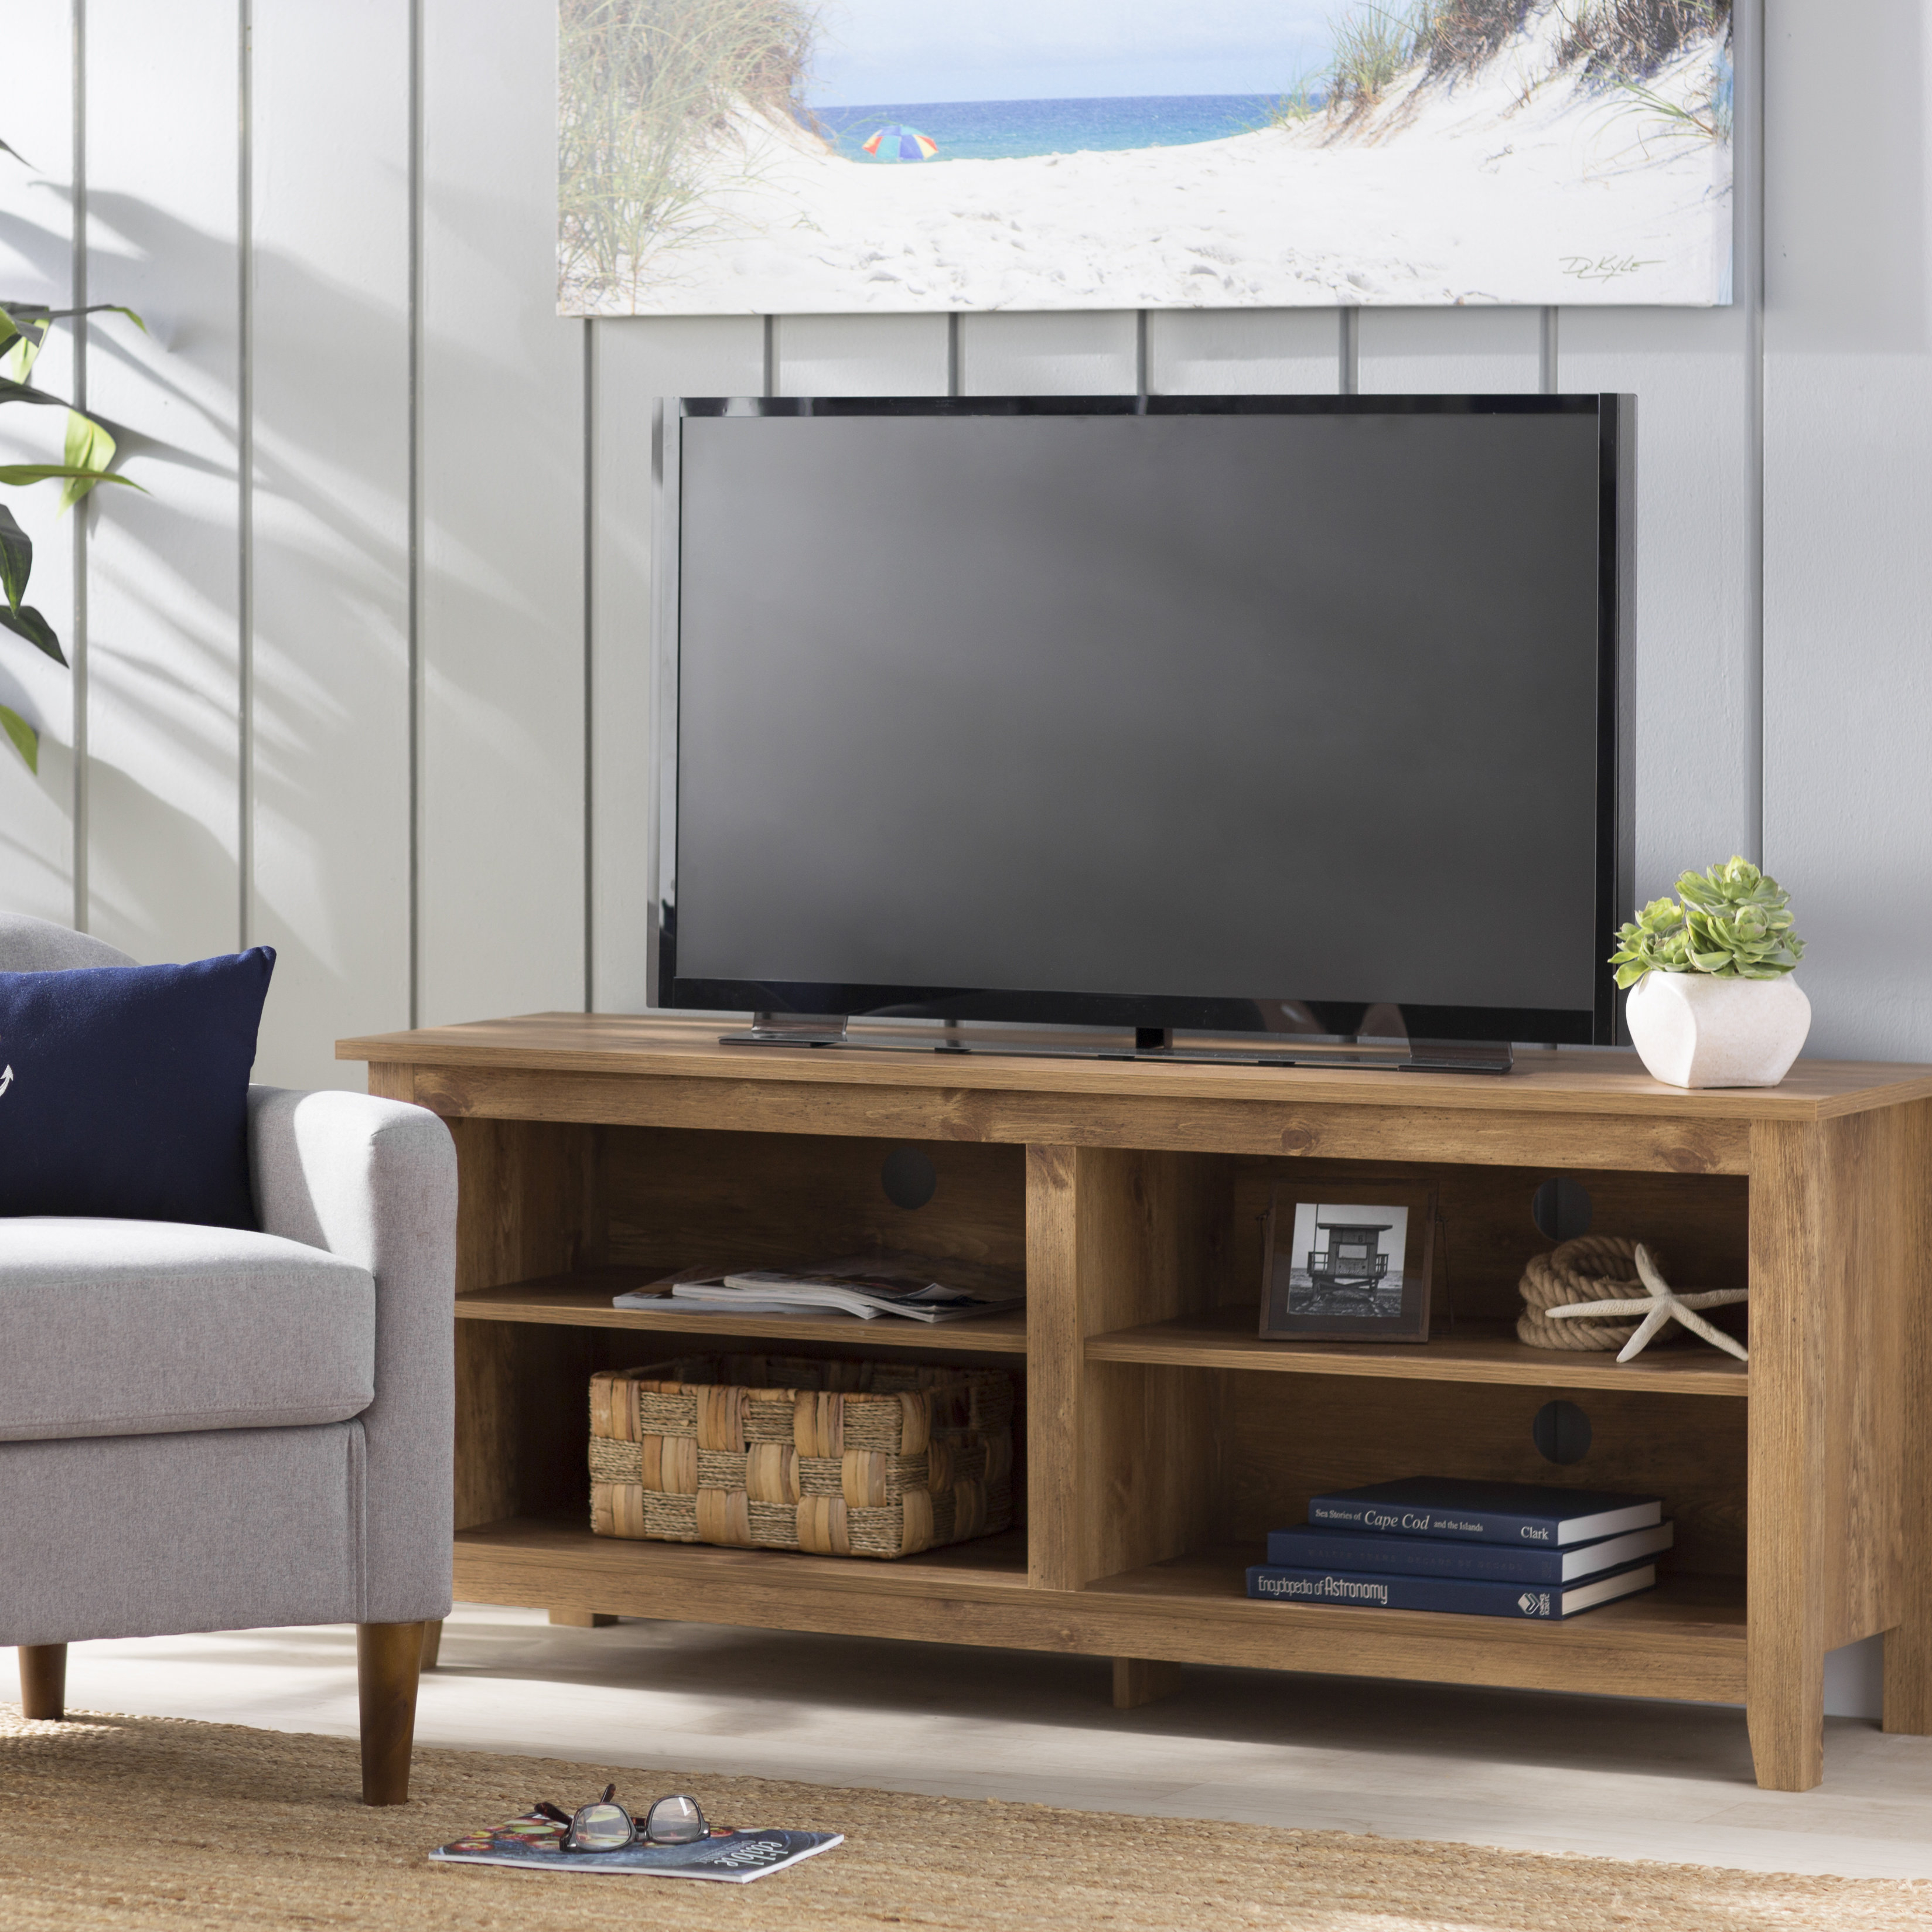 Tv Stands & Entertainment Centers You'll Love | Wayfair With Regard To Kenzie 60 Inch Open Display Tv Stands (View 4 of 30)